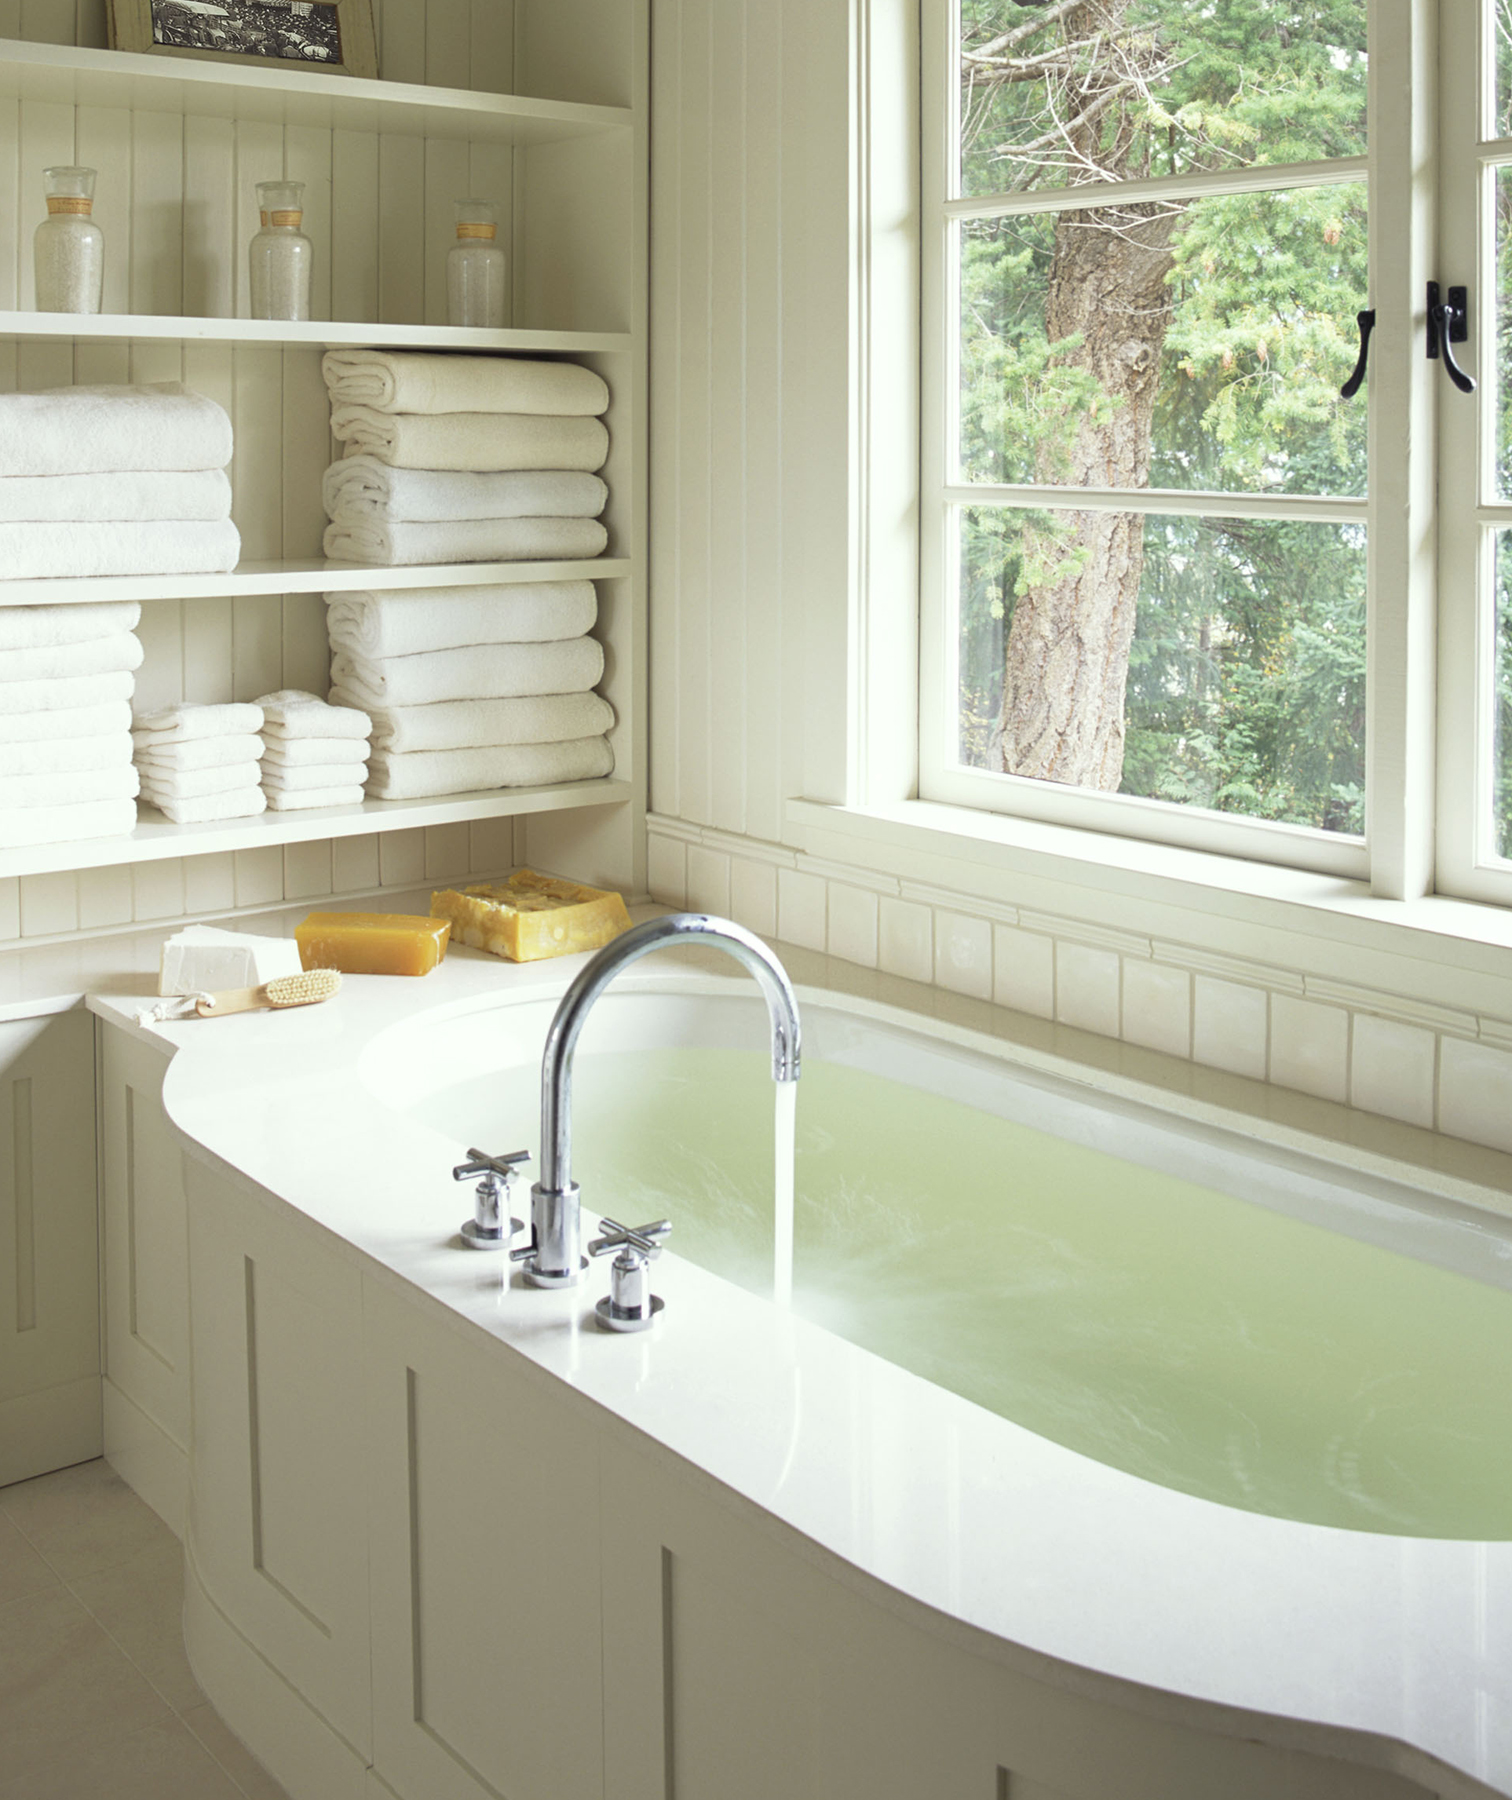 5 Simple Bathroom Upgrades That Really Pay Off